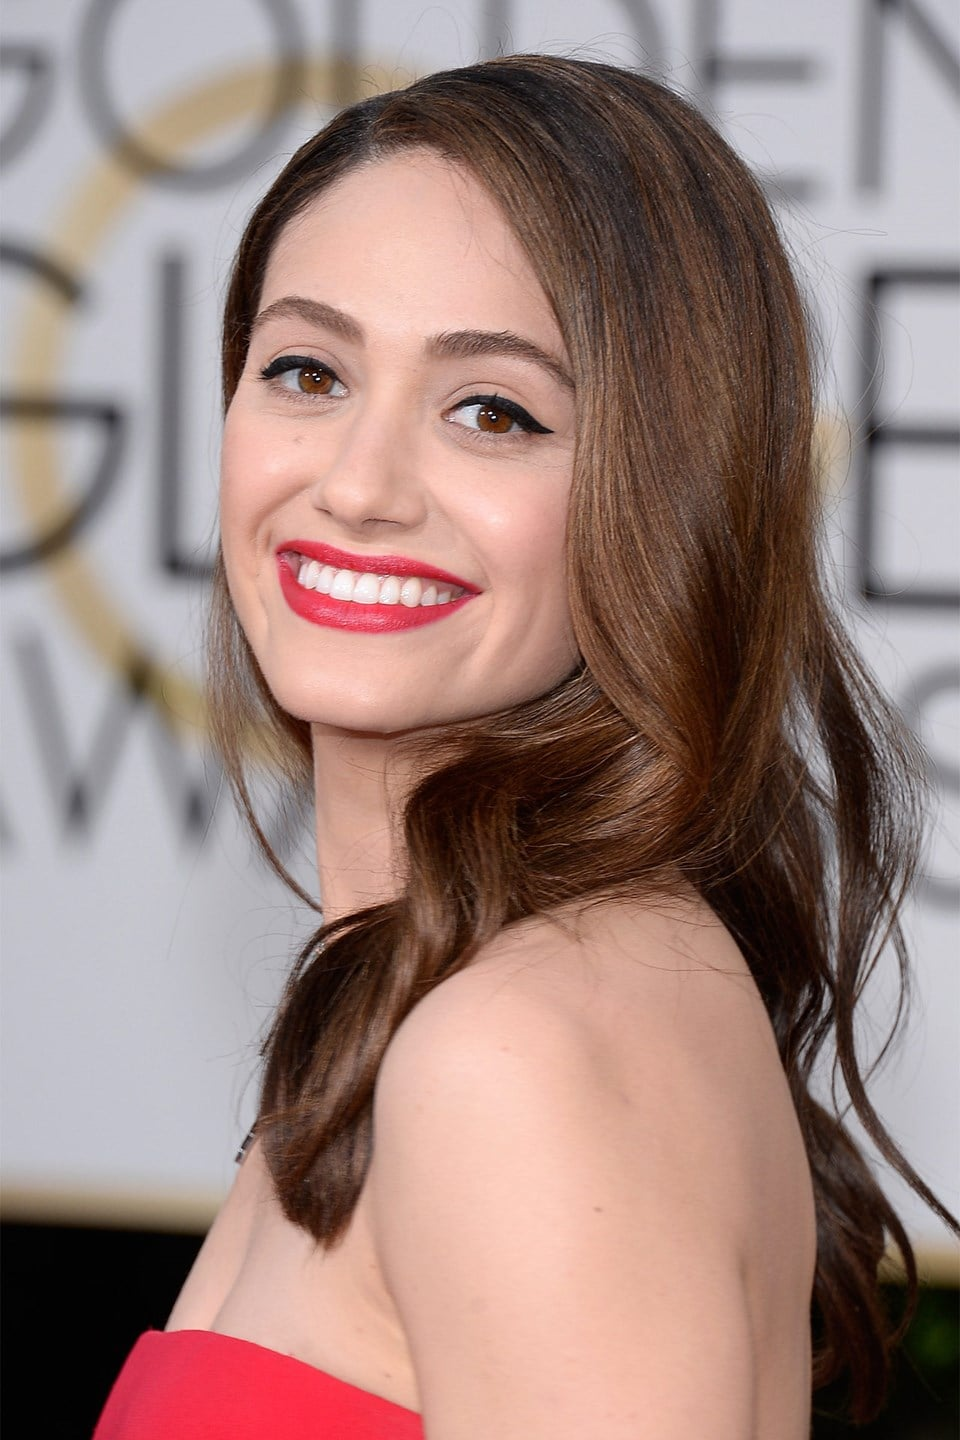 Emmy-Rossum-beauty-Glamour-10Jan15-Getty_b_960x1440.jpg